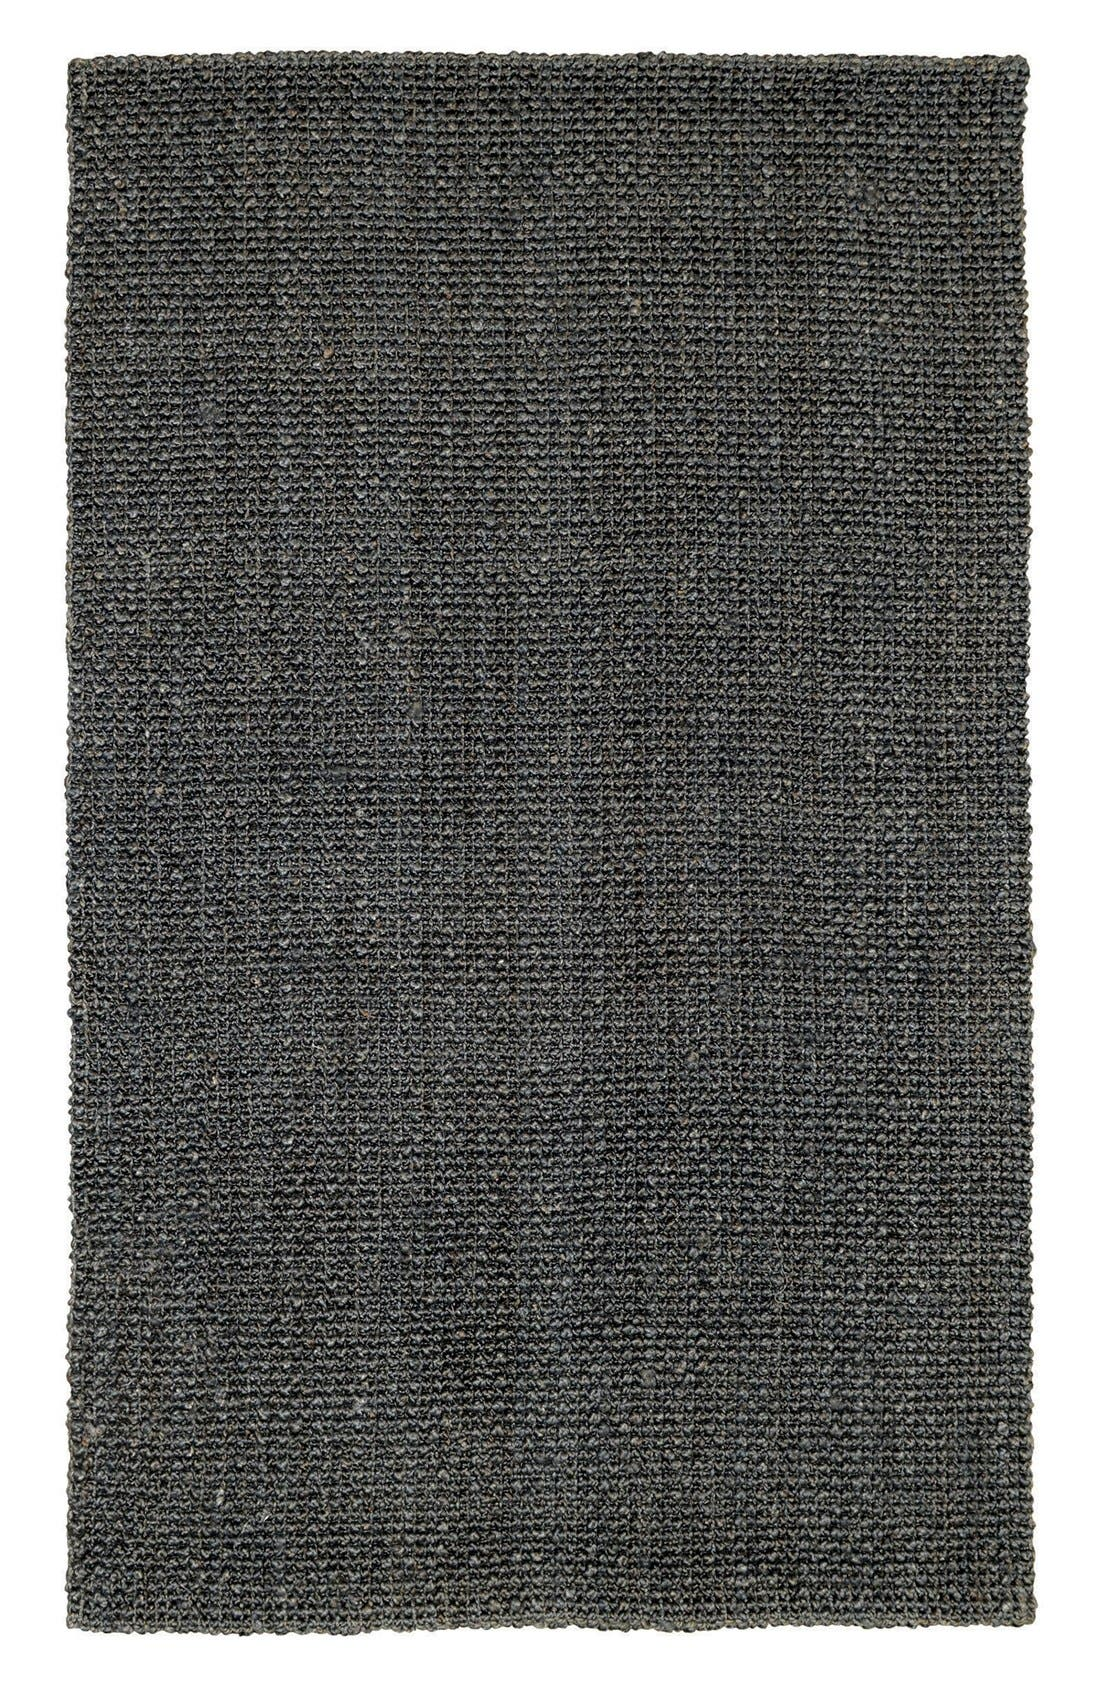 Knobby Loop Handwoven Rug,                         Main,                         color, Charcoal